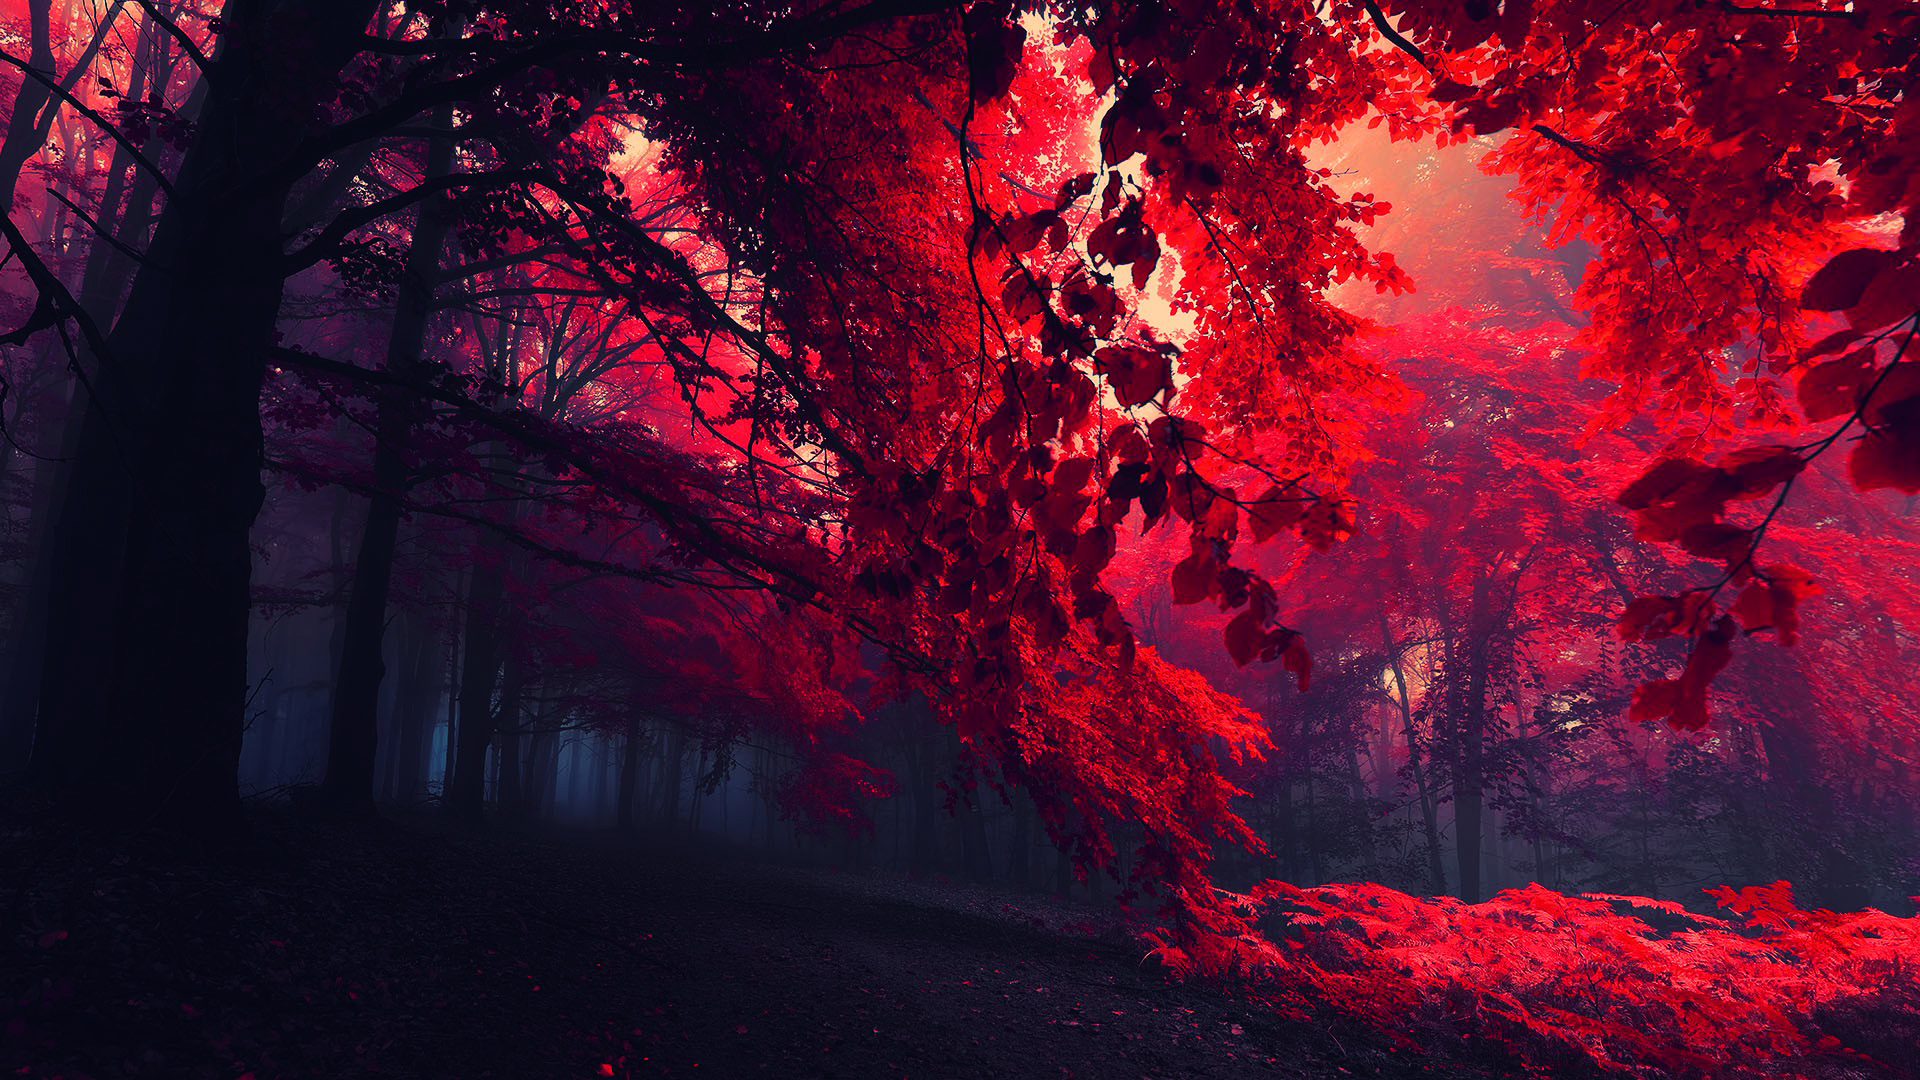 red fall wallpaper - photo #3